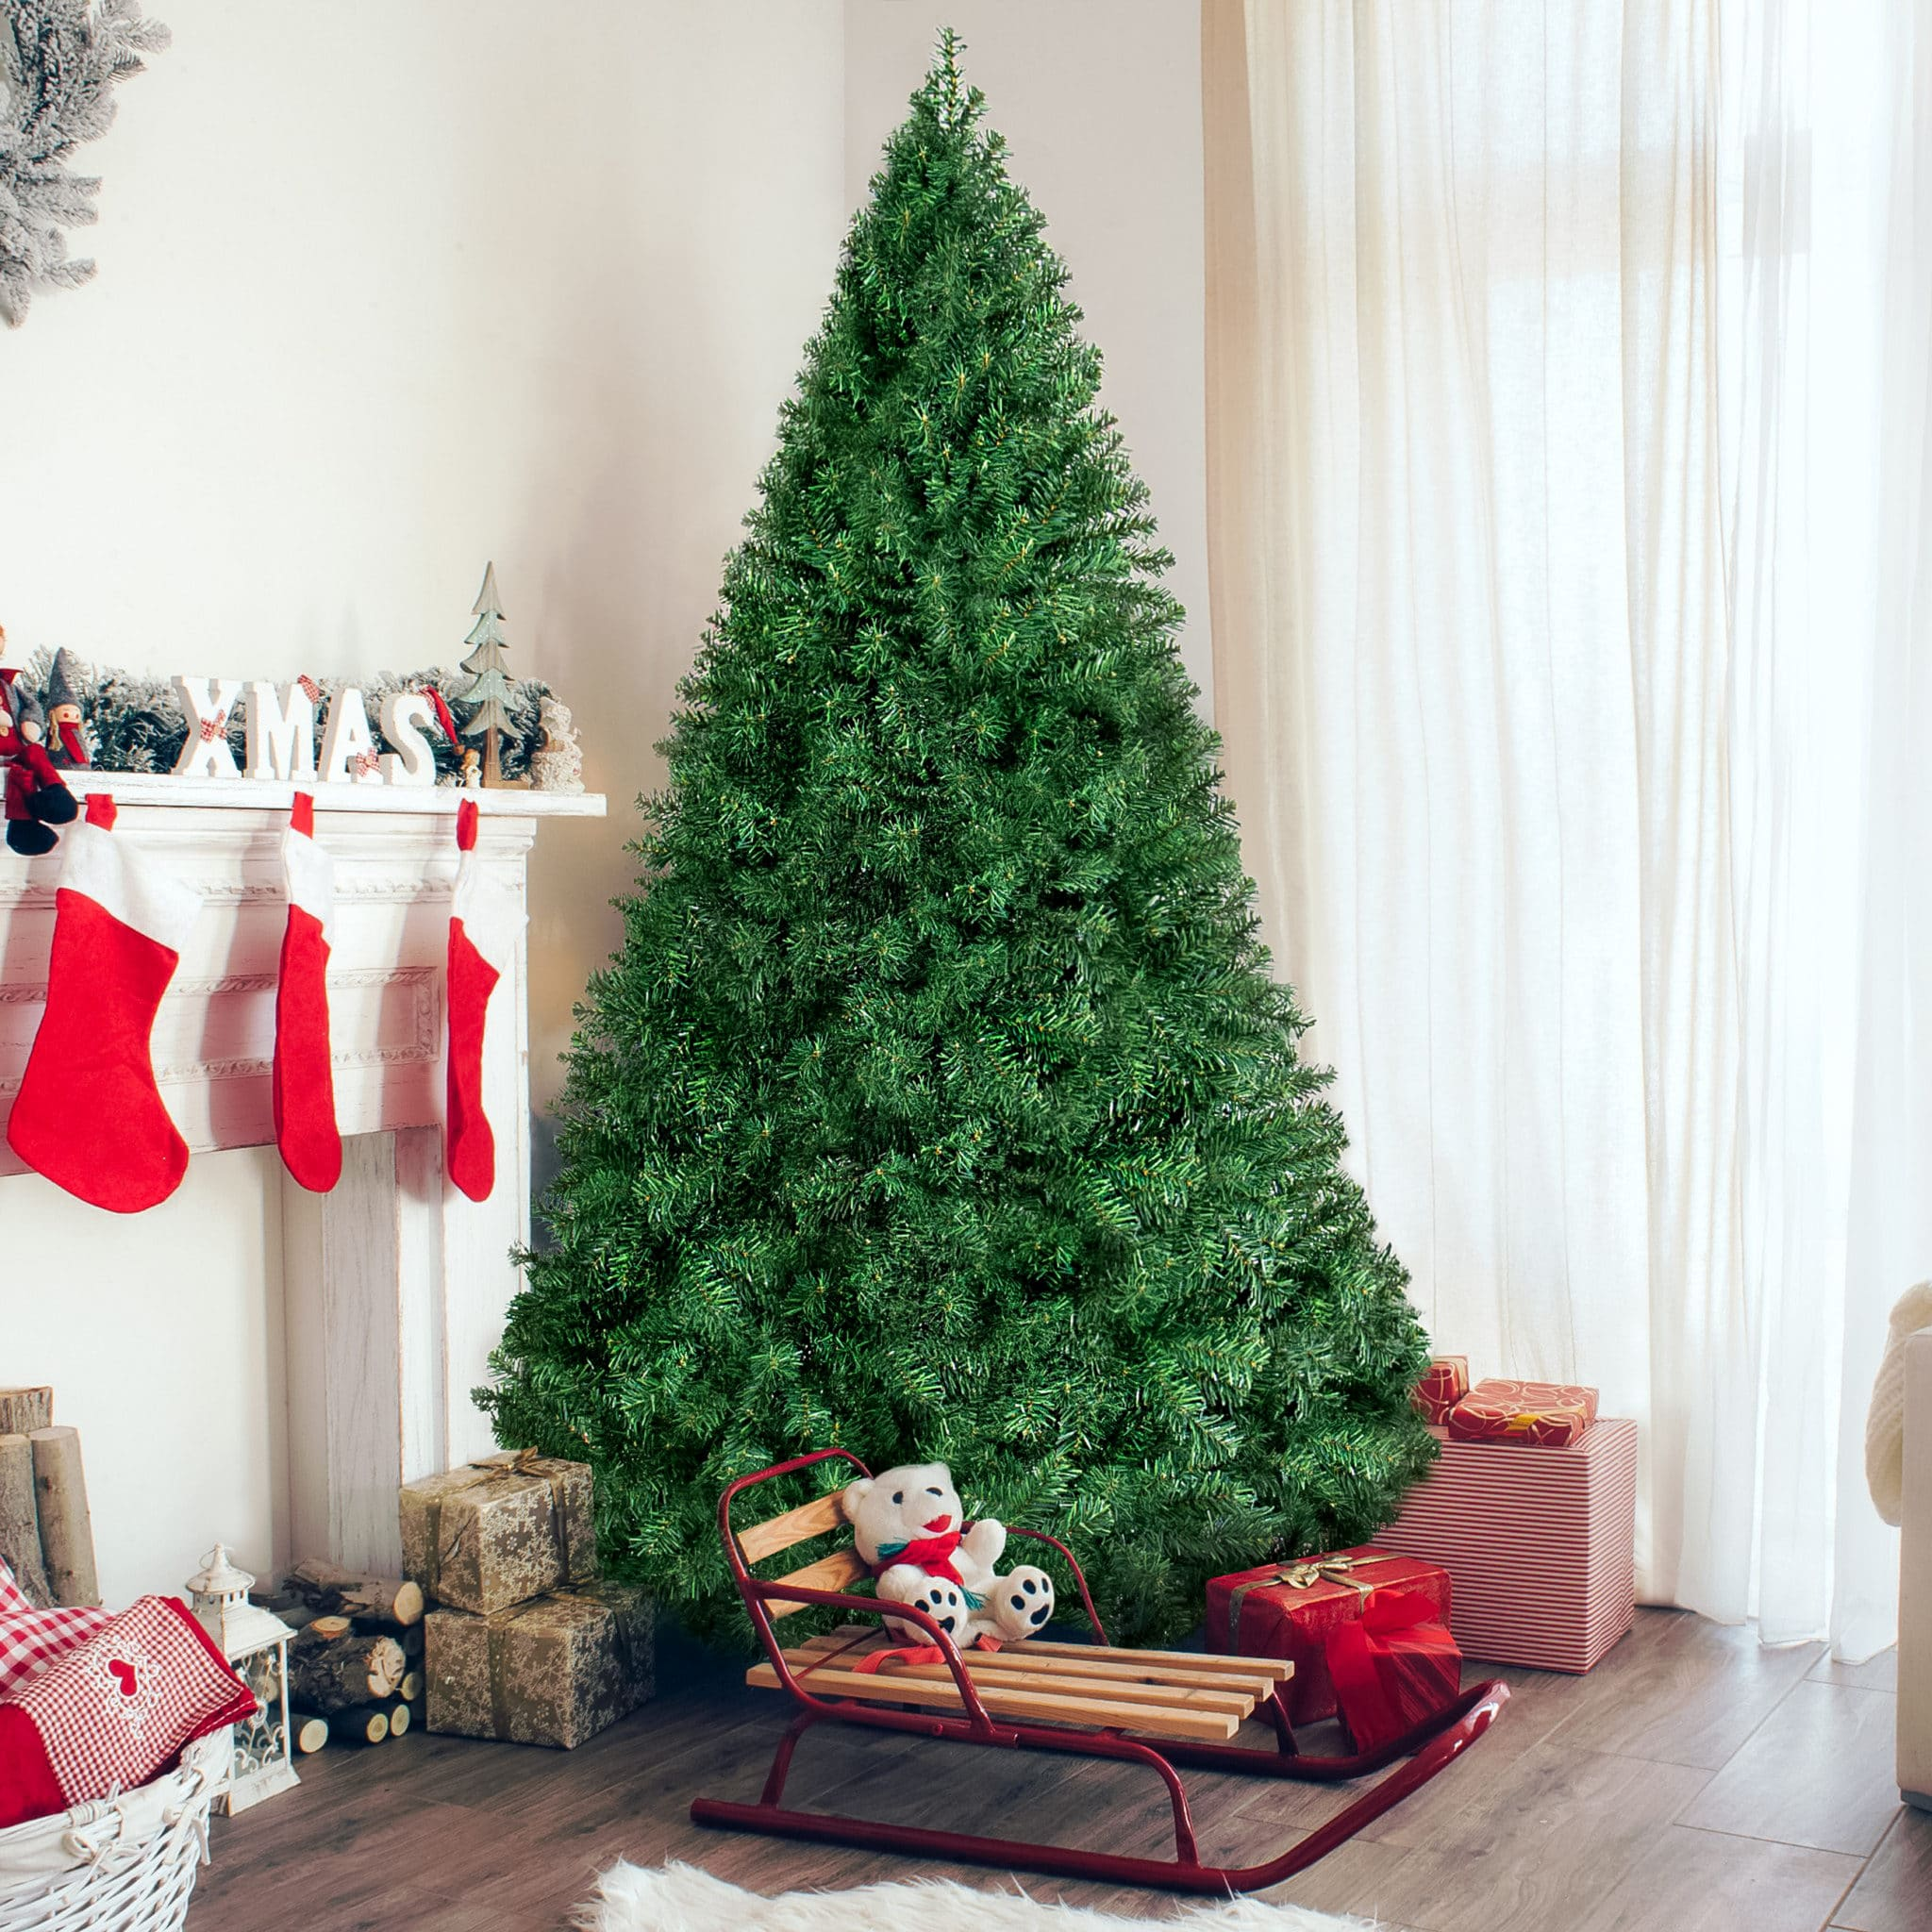 6ft Premium Hinged Artificial Christmas Pine Tree Black Friday Deal